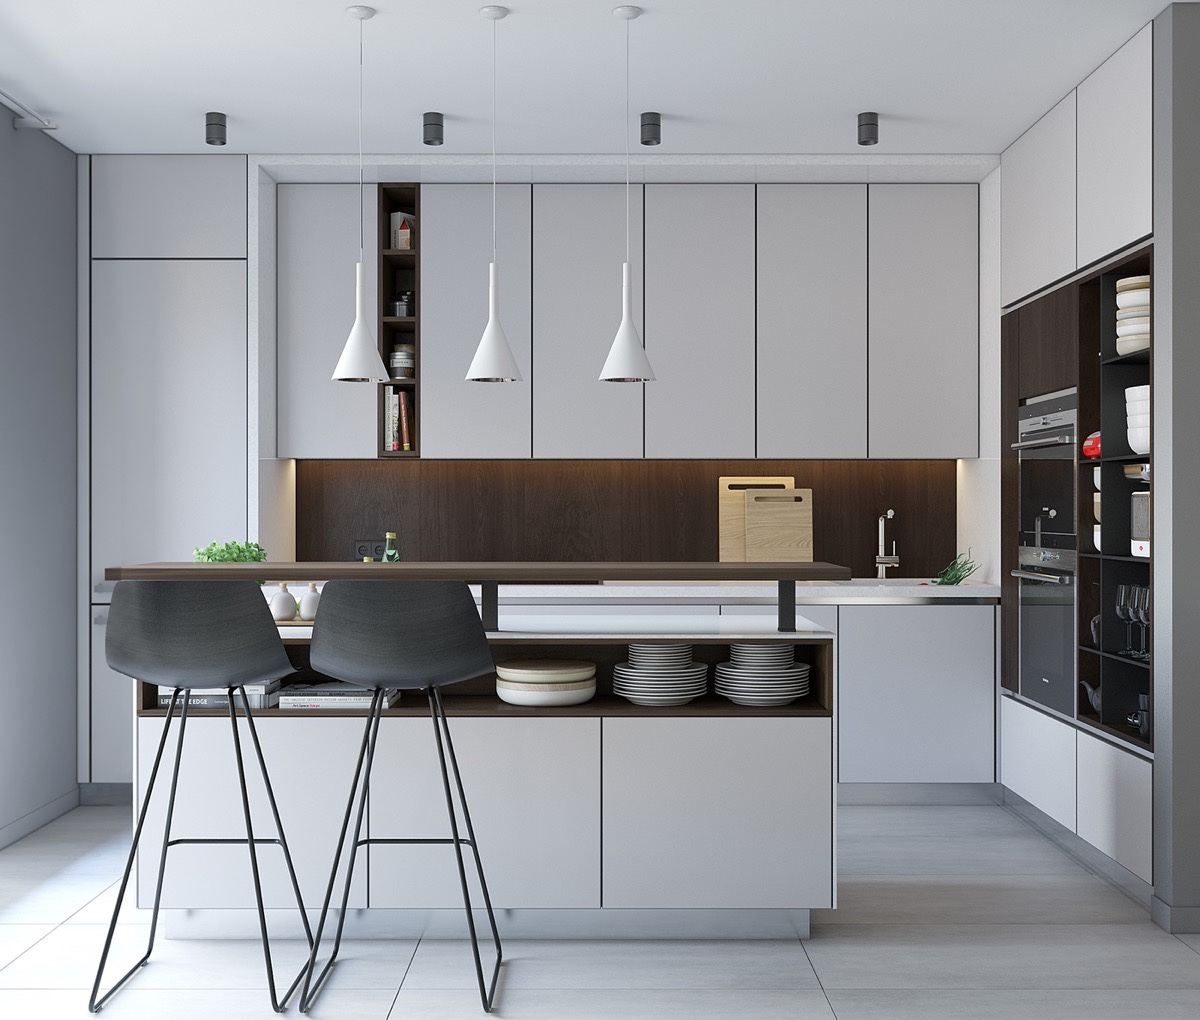 Simple Minimalist Kitchen Design